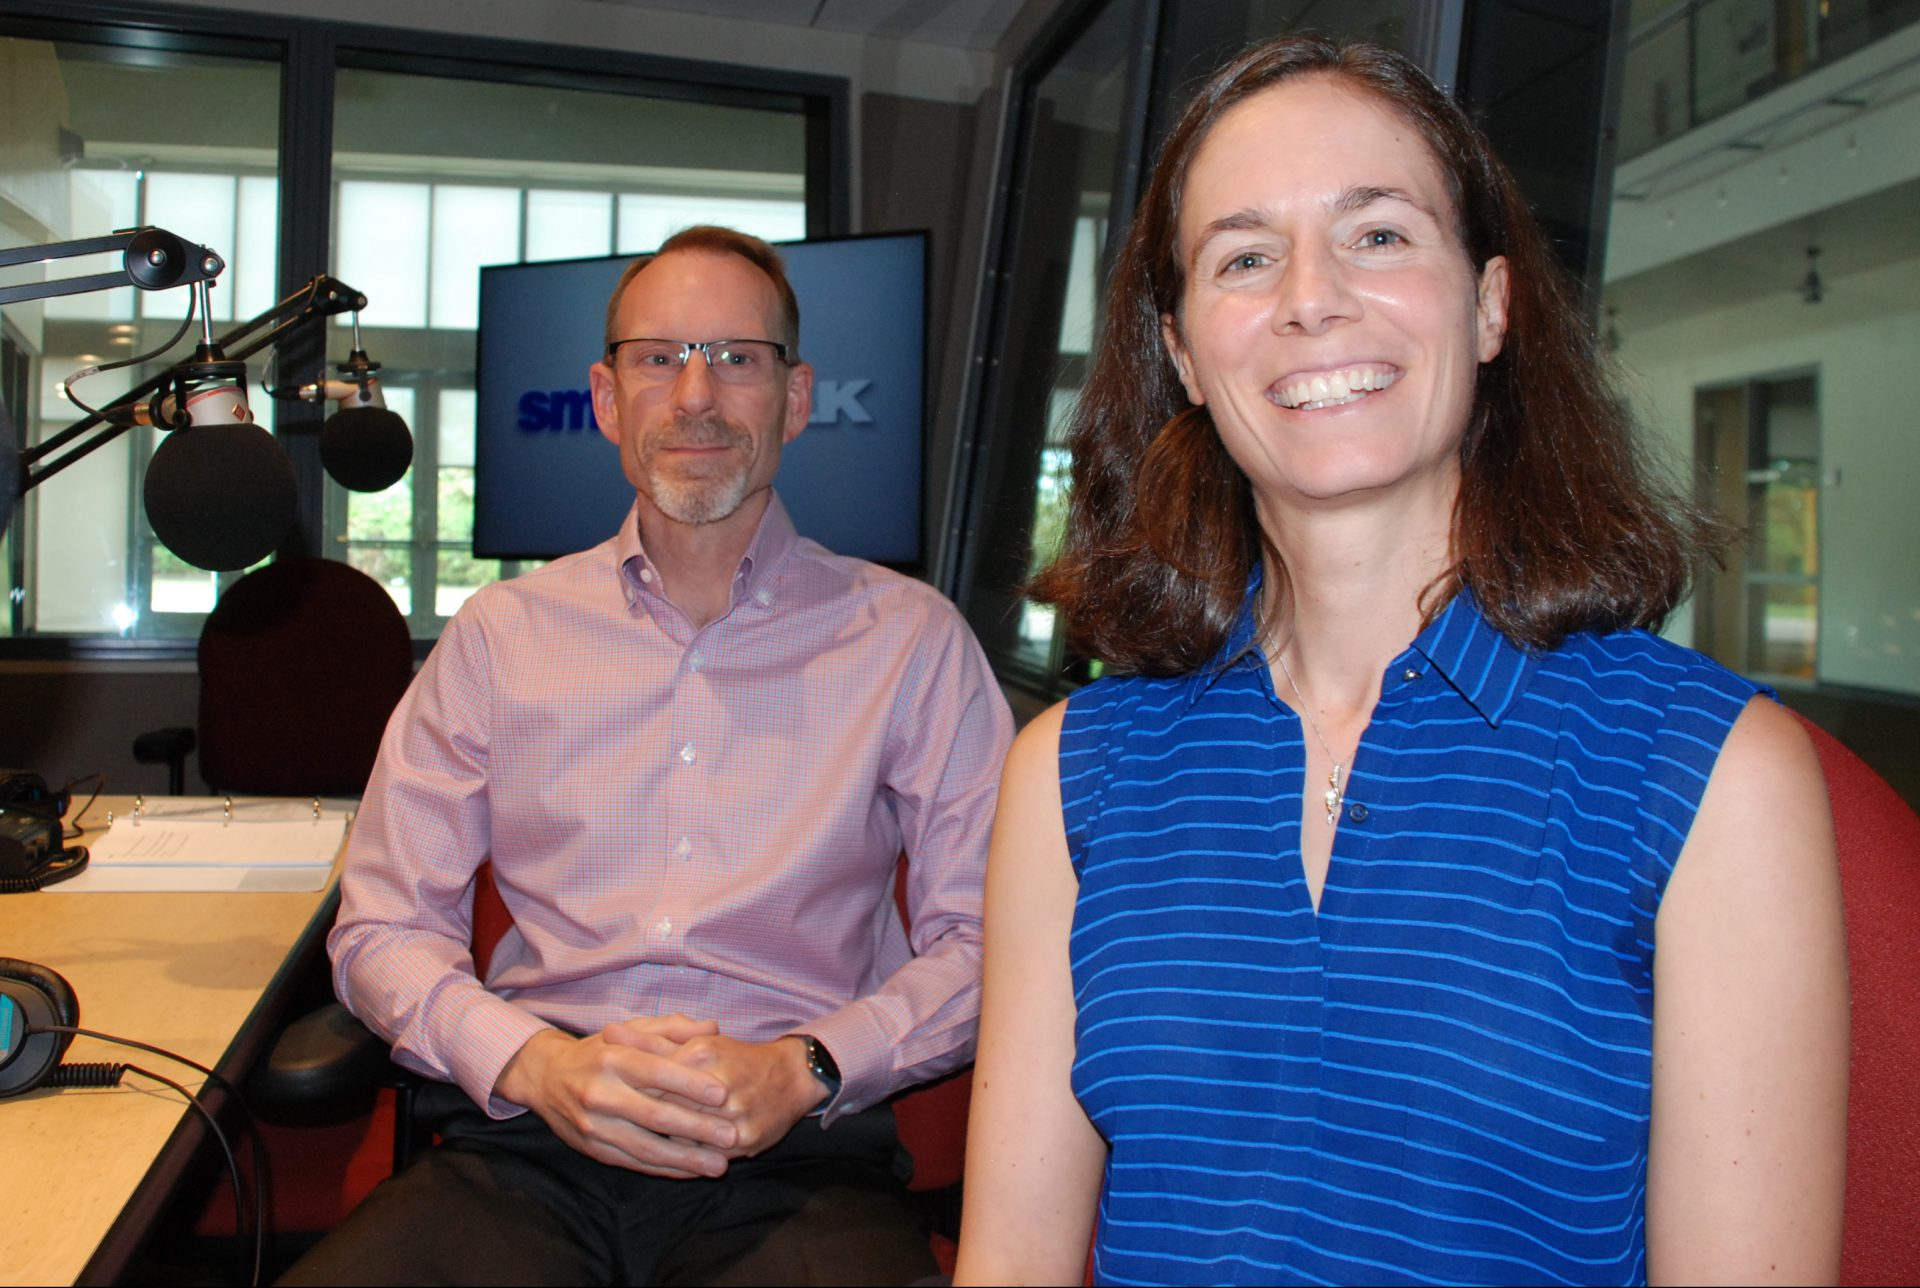 Dr. Brian Meier, Professor of psychology at Gettysburg College, and Dr. Courtney Lappas, professor of biology at Lebanon Valley College, appeared on Smart Talk, September 6, 2019.